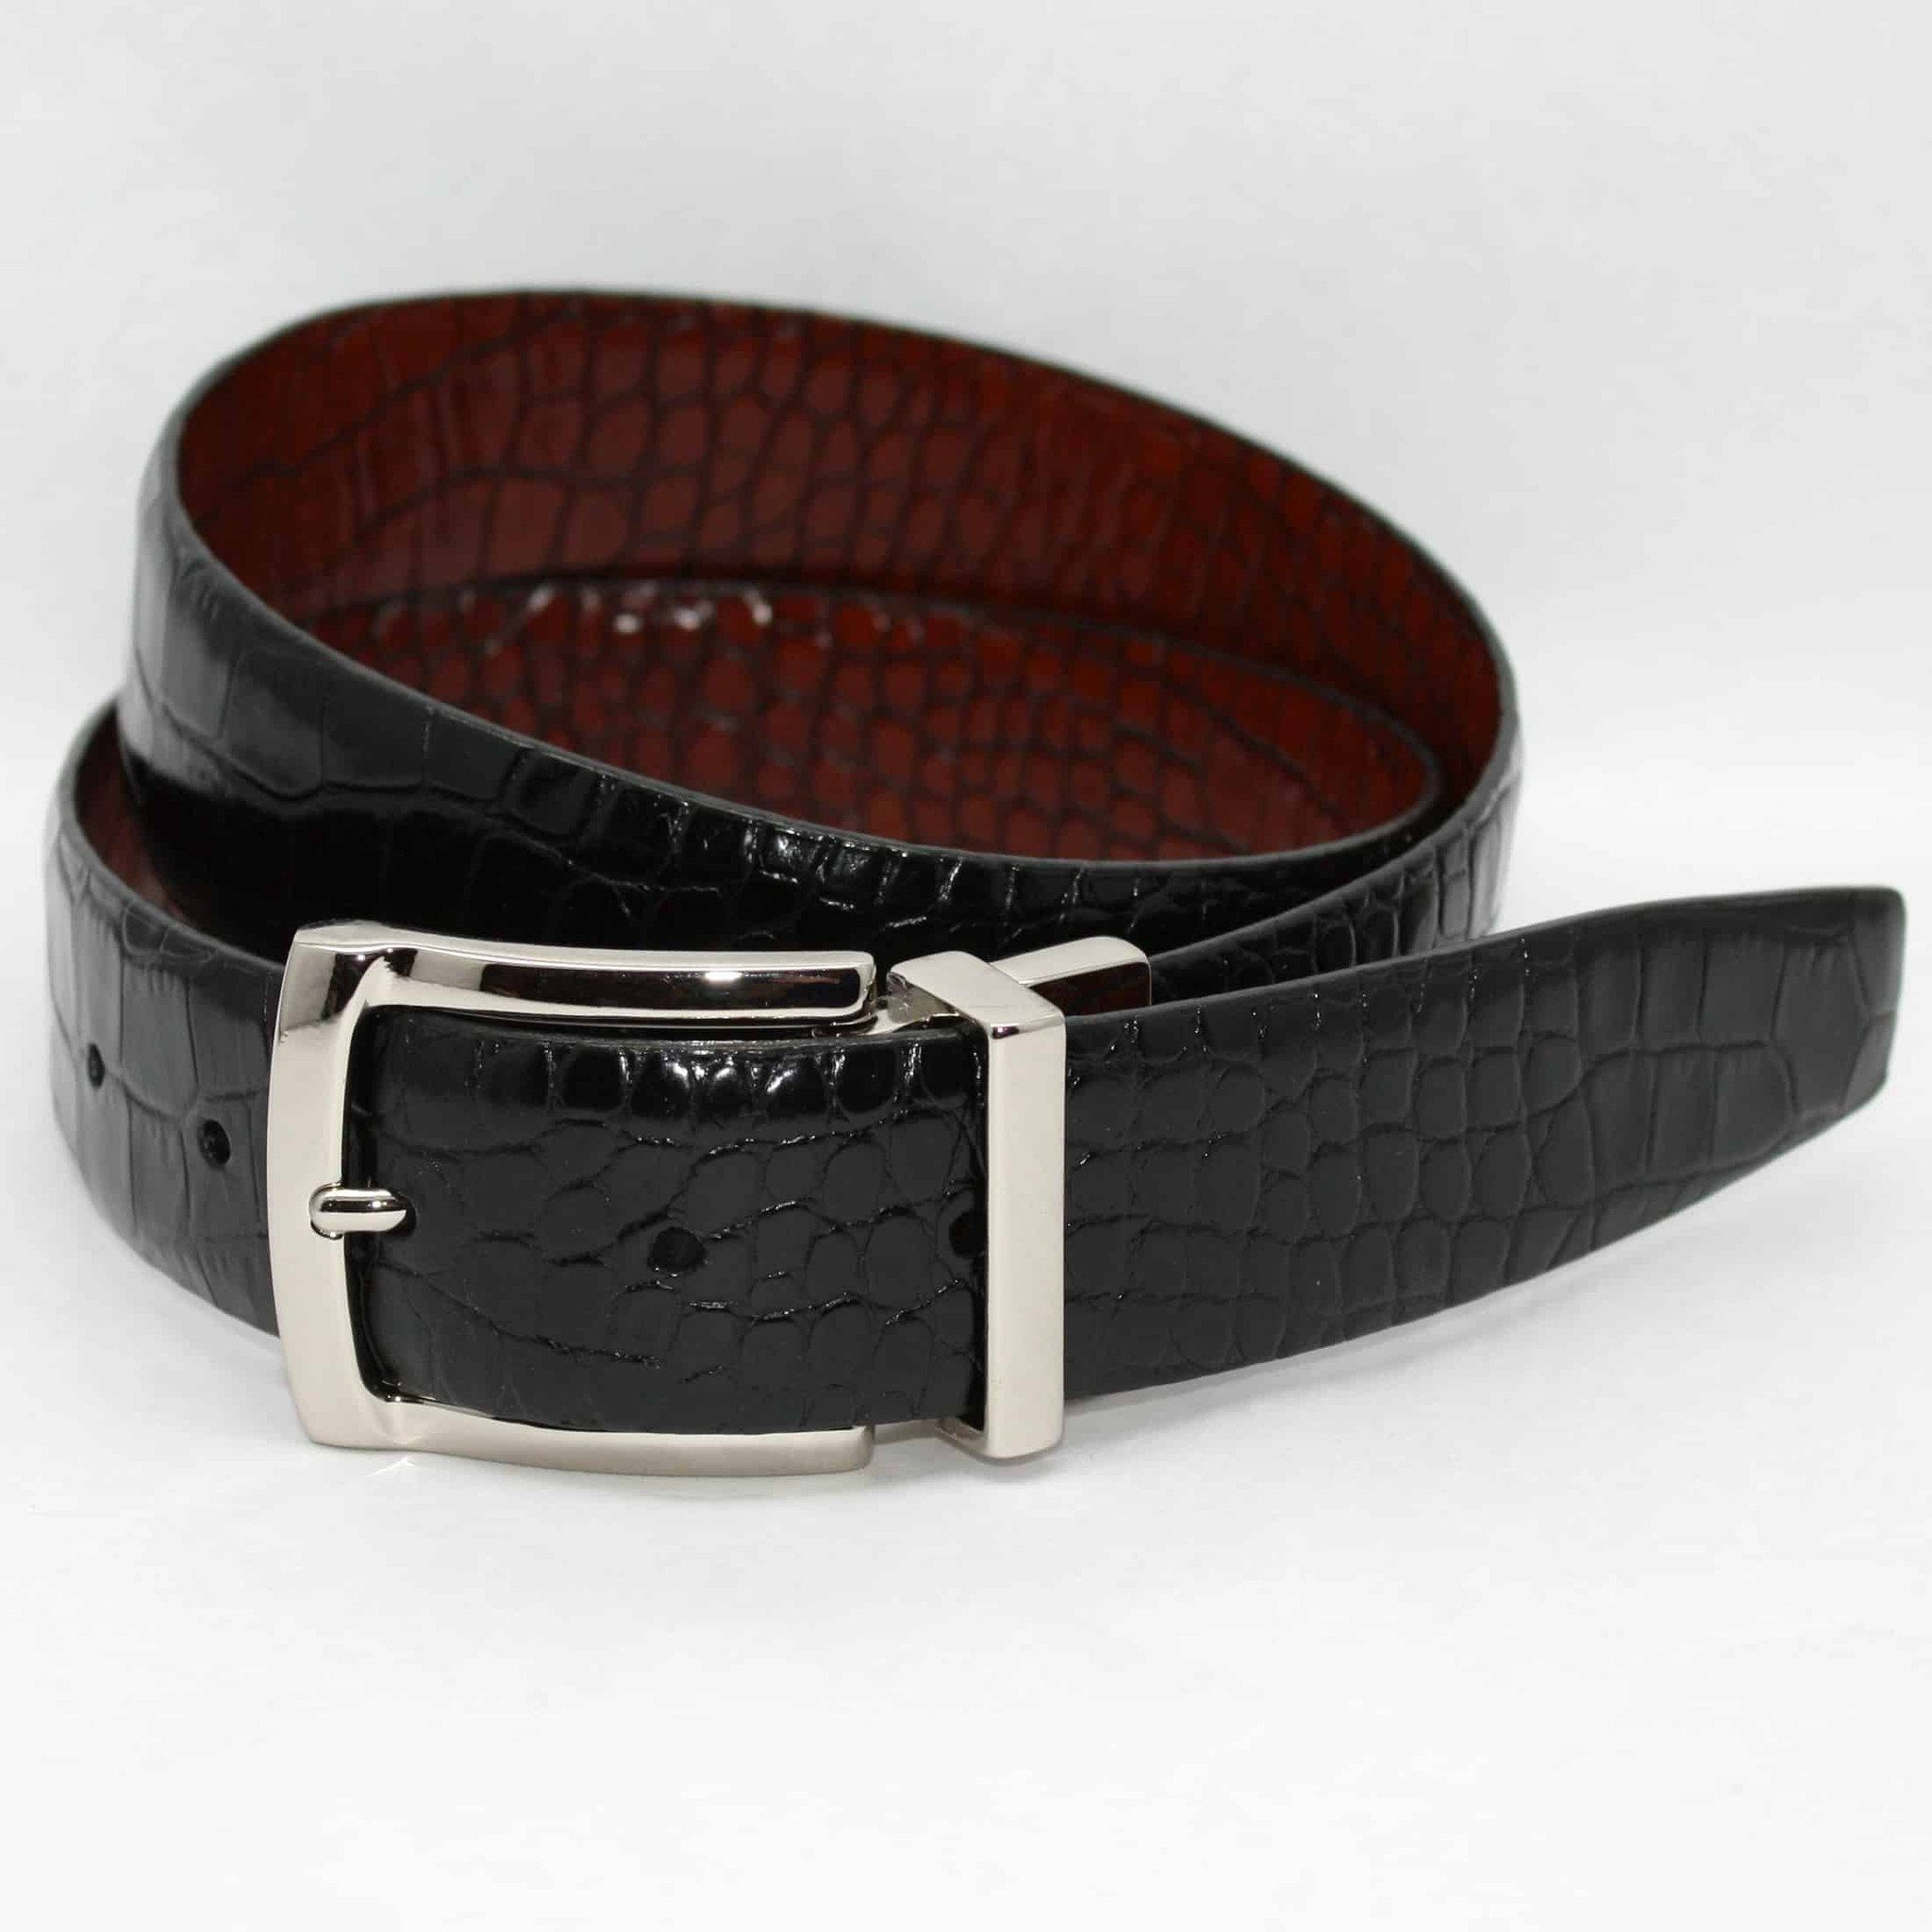 Italian Embossed Gator Calfskin - Reversible Black to Brown,BELT,GentRow.com, | GentRow.com